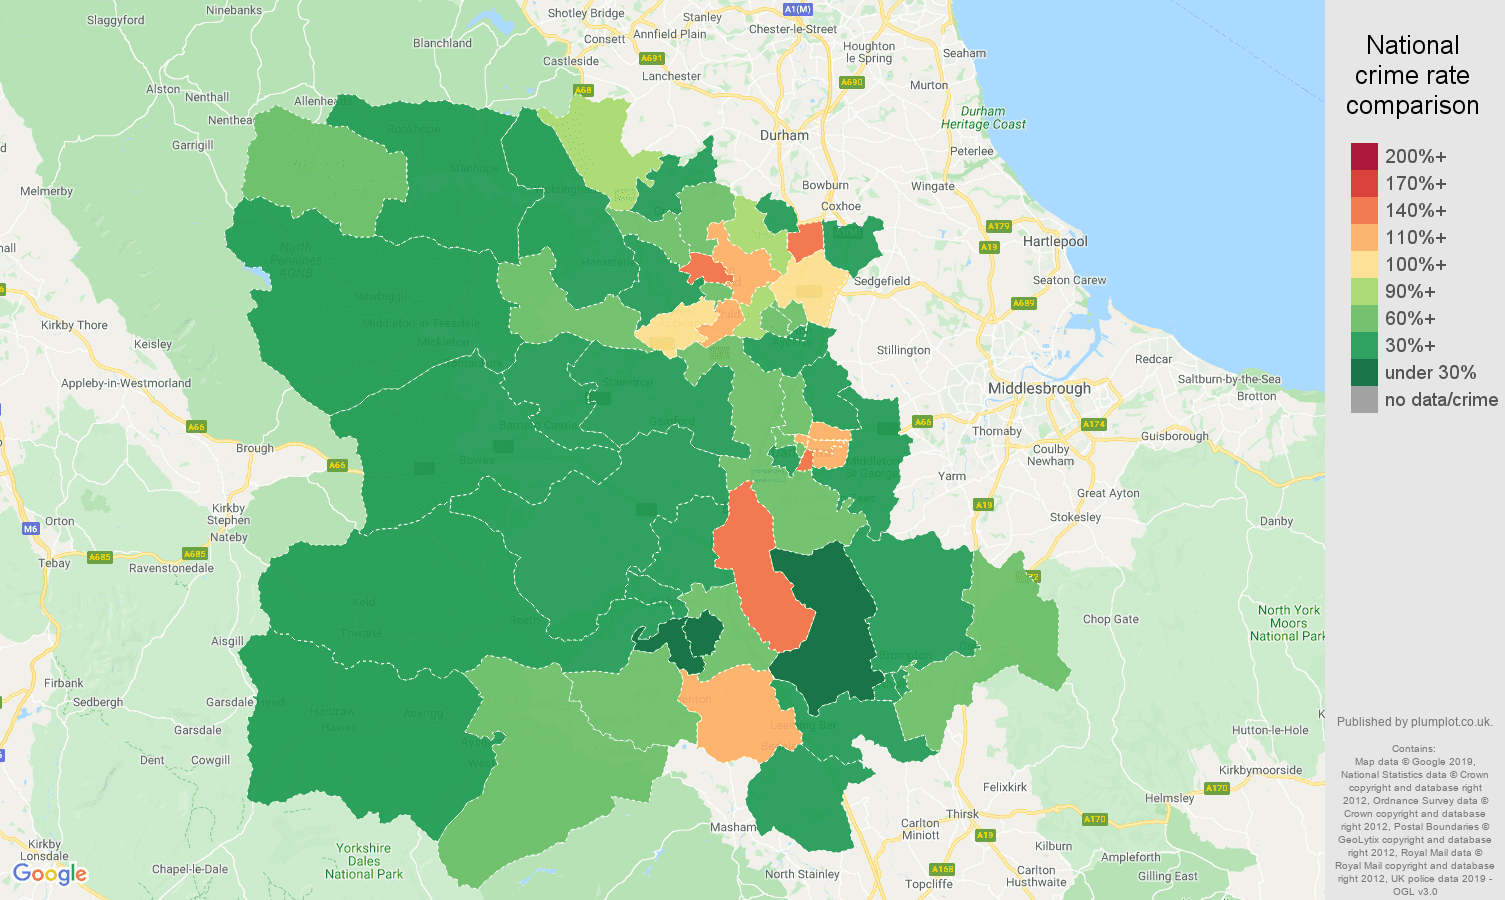 Darlington other theft crime rate comparison map